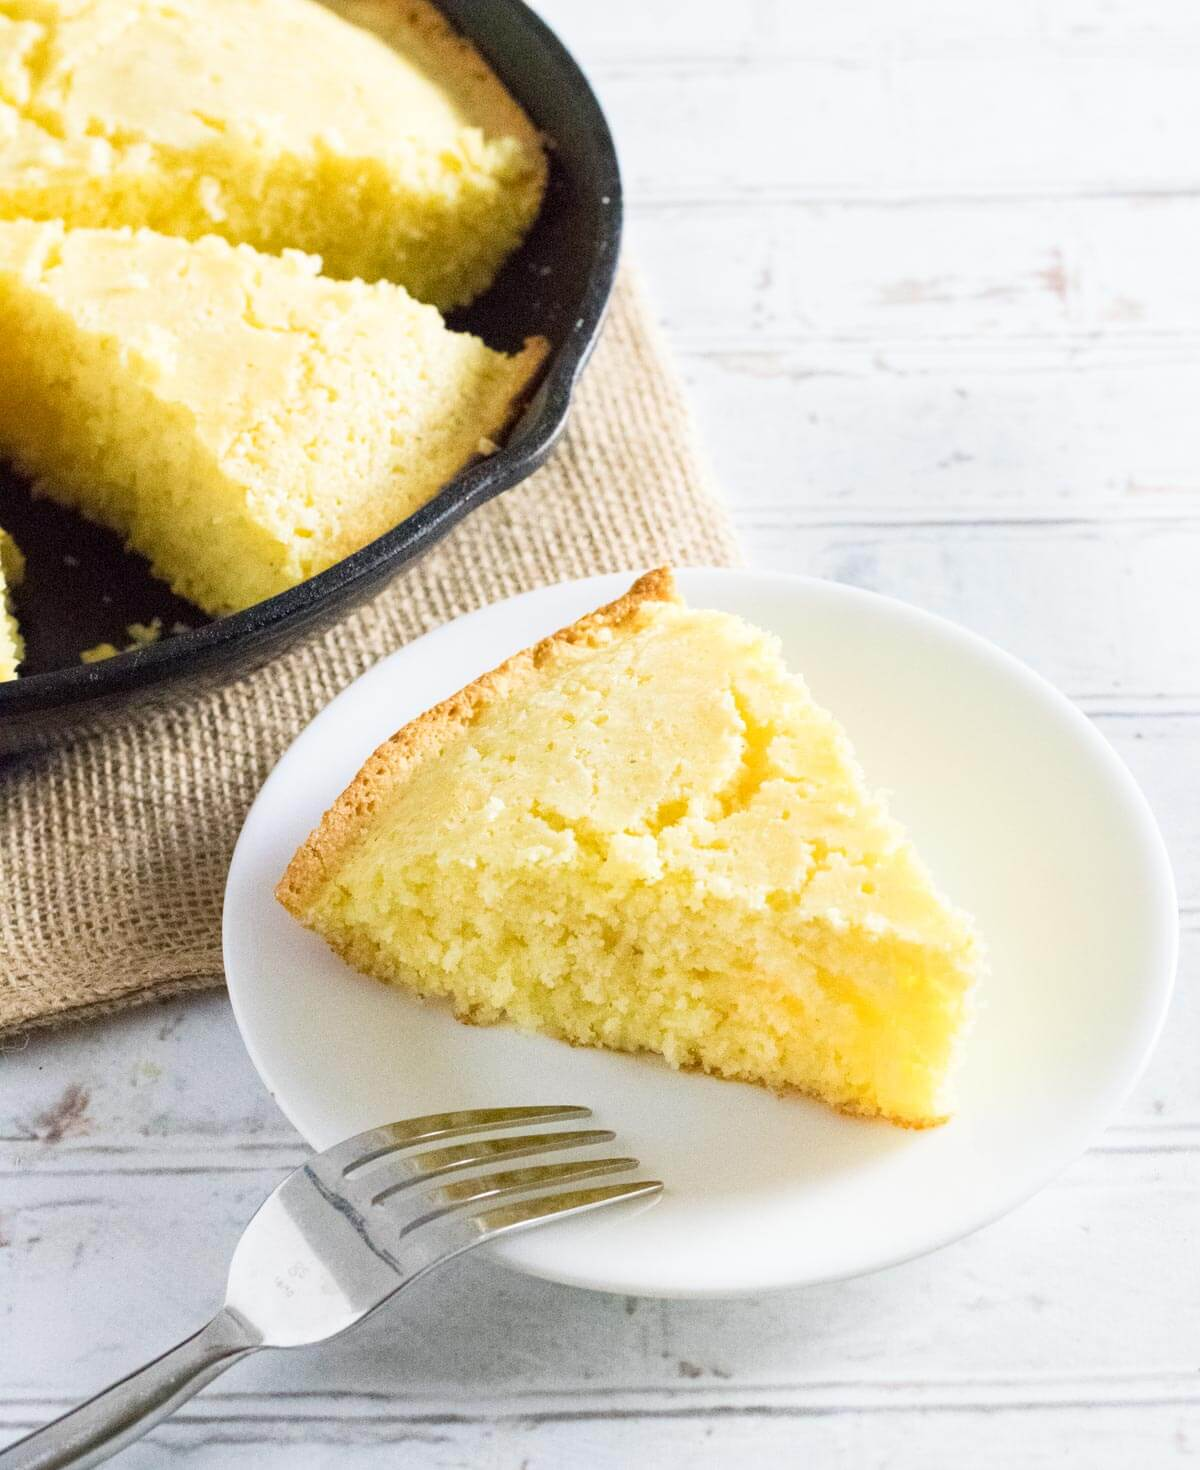 Cornbread without buttermilk on a white plate.